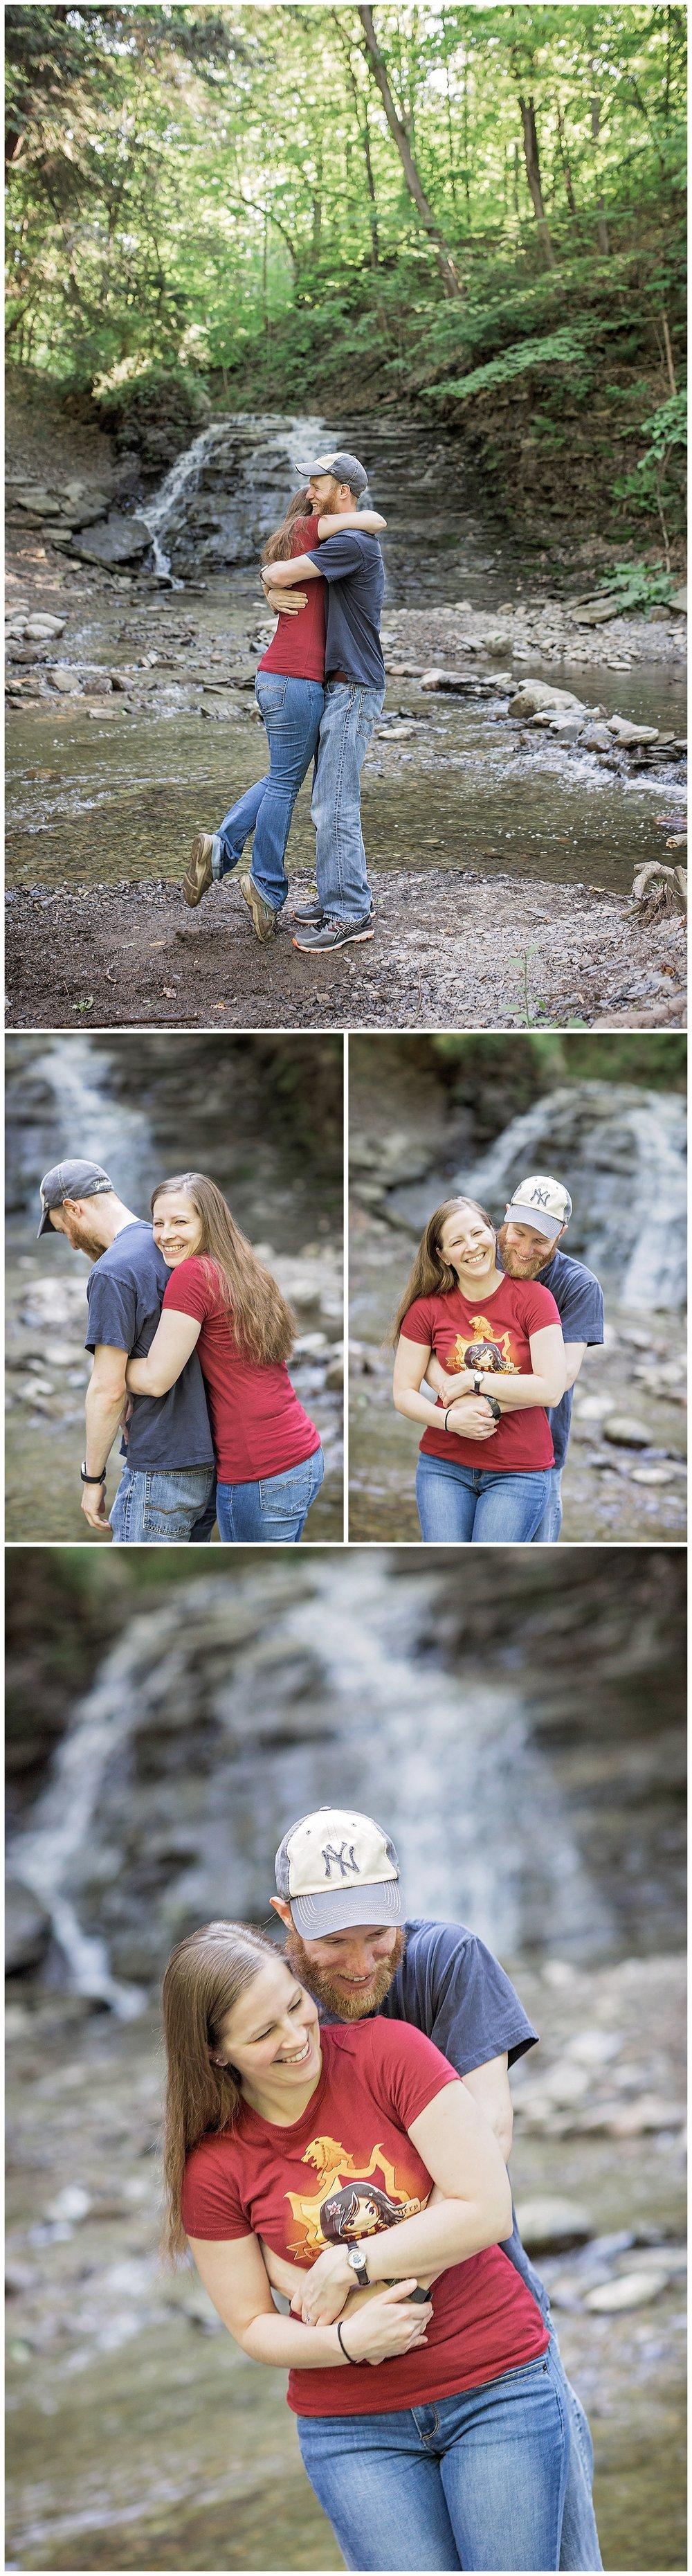 M & B - Letchworth state park - Lass & Beau-101_Buffalo wedding photography.jpg